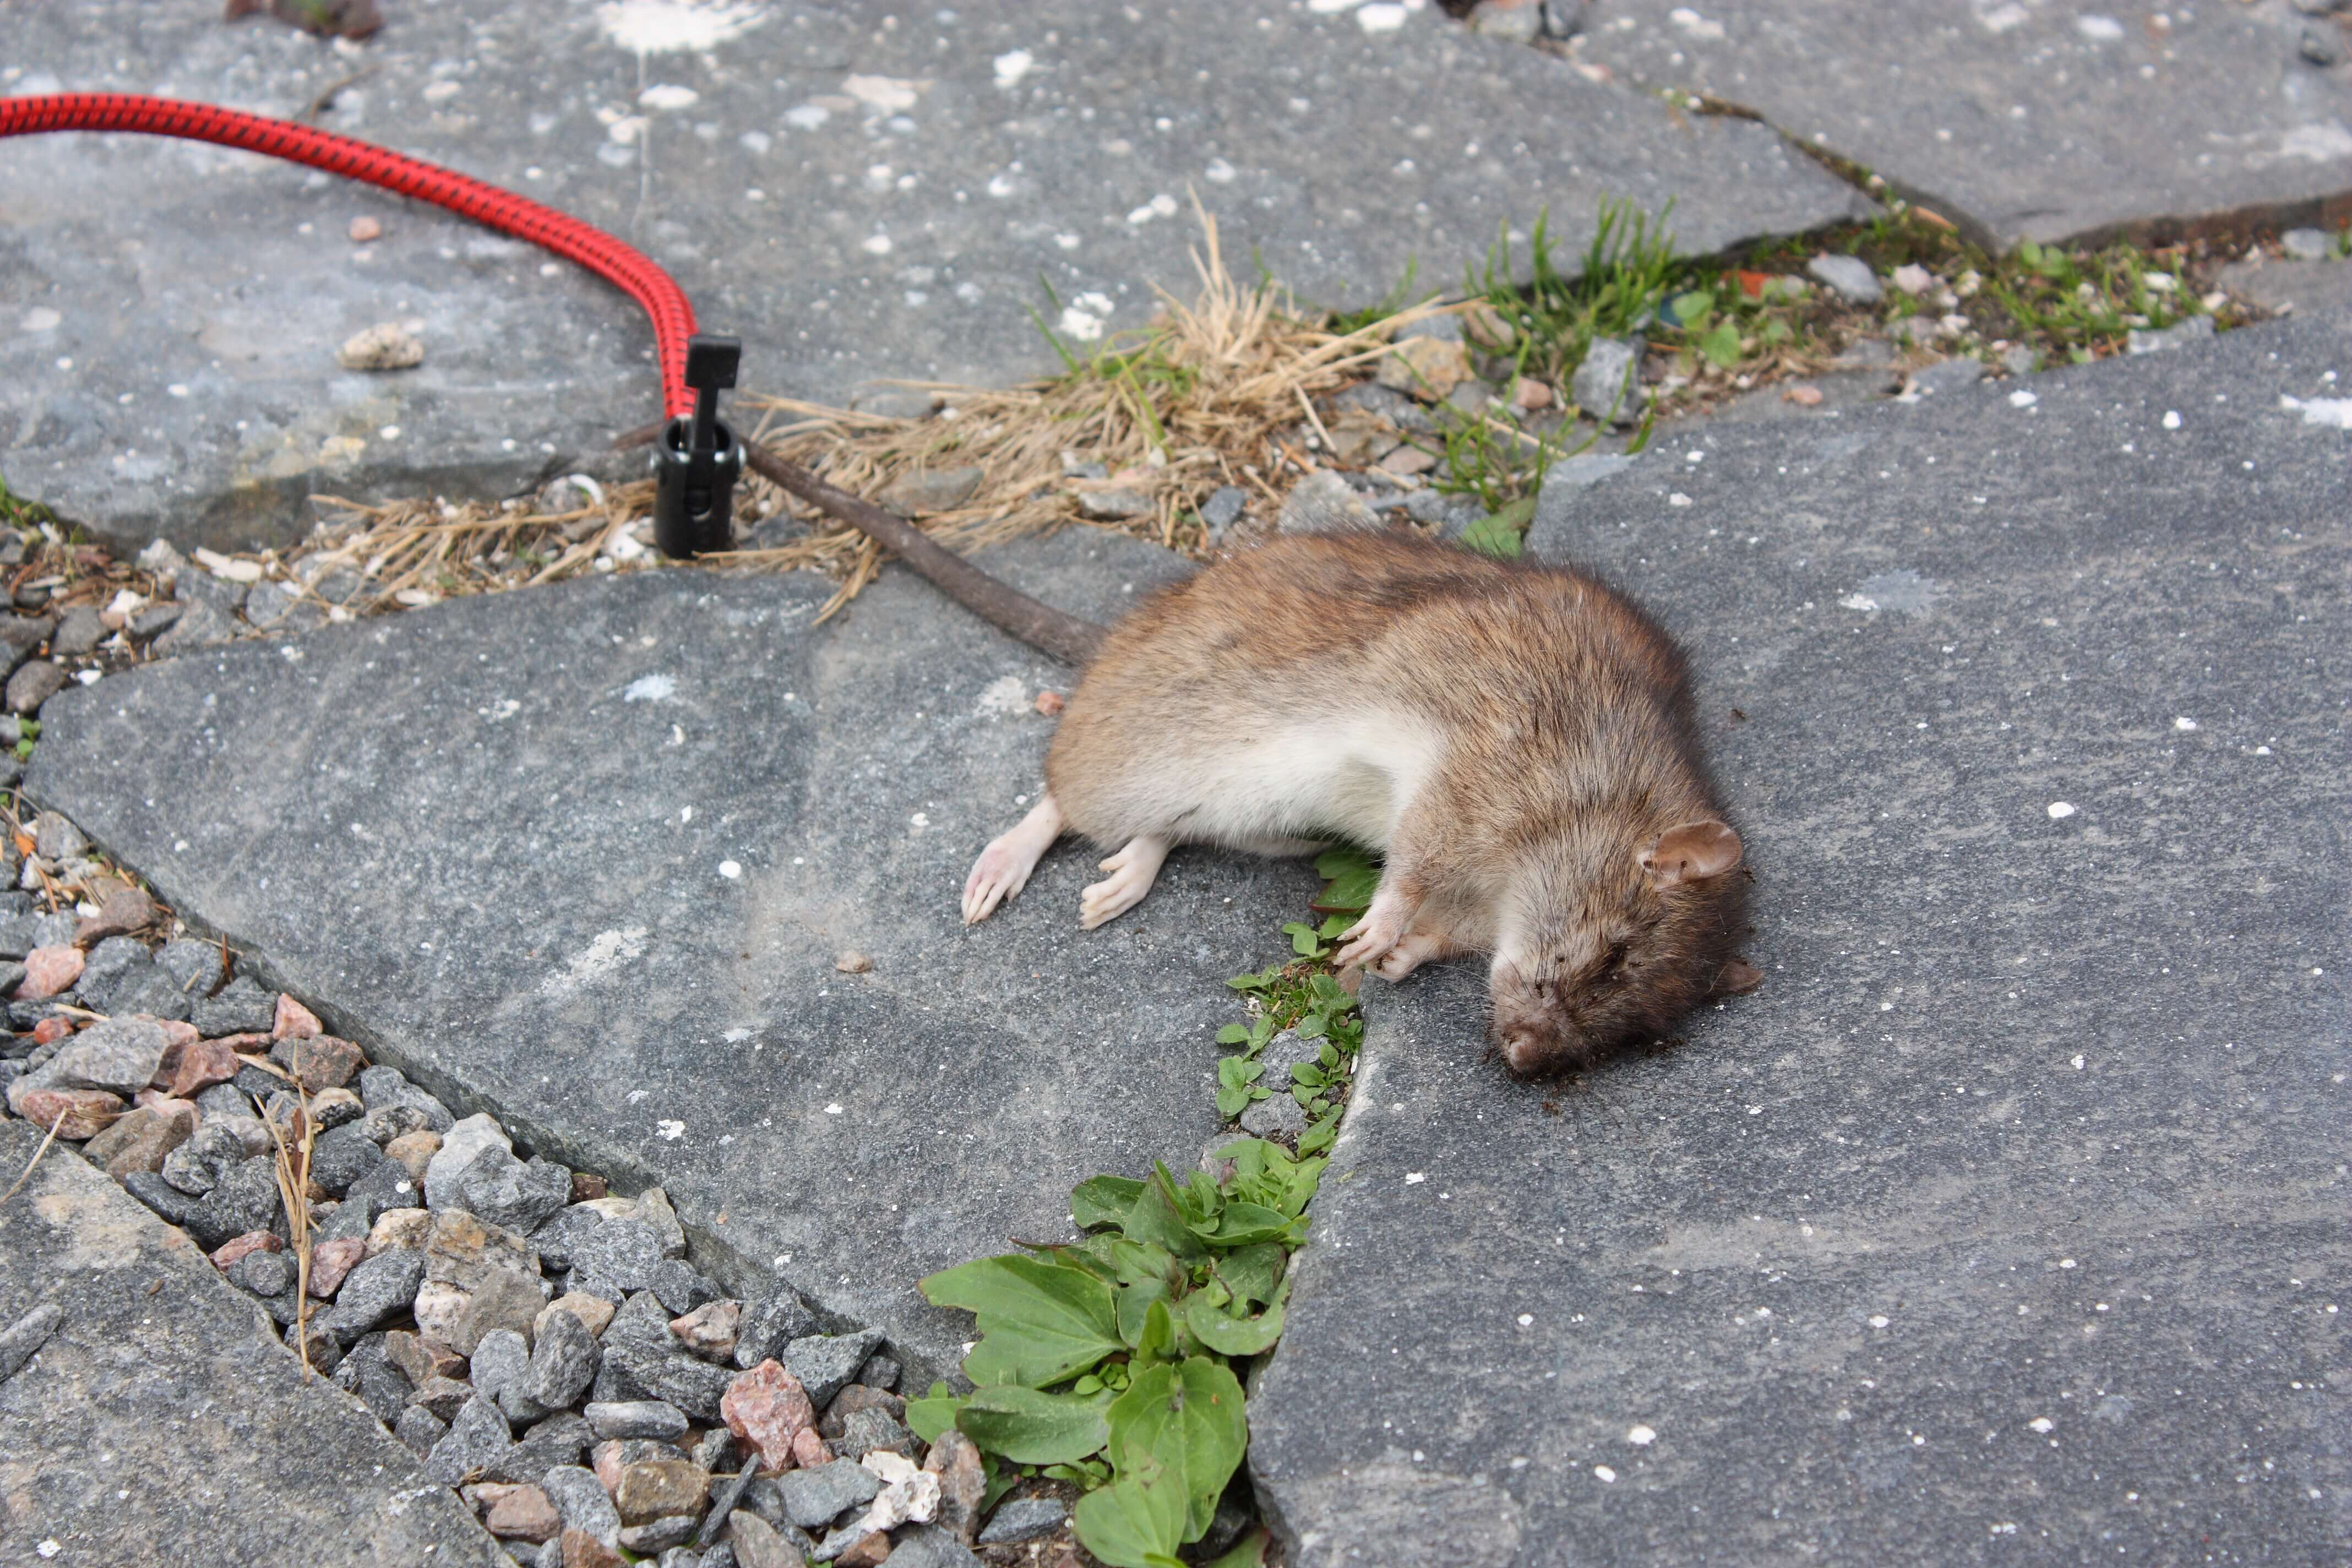 5787039305_ff2a5109e4_o?resize=780%2C520&ssl=1 blog how to prevent rats from eating your car wires mice eating wiring harness at bayanpartner.co